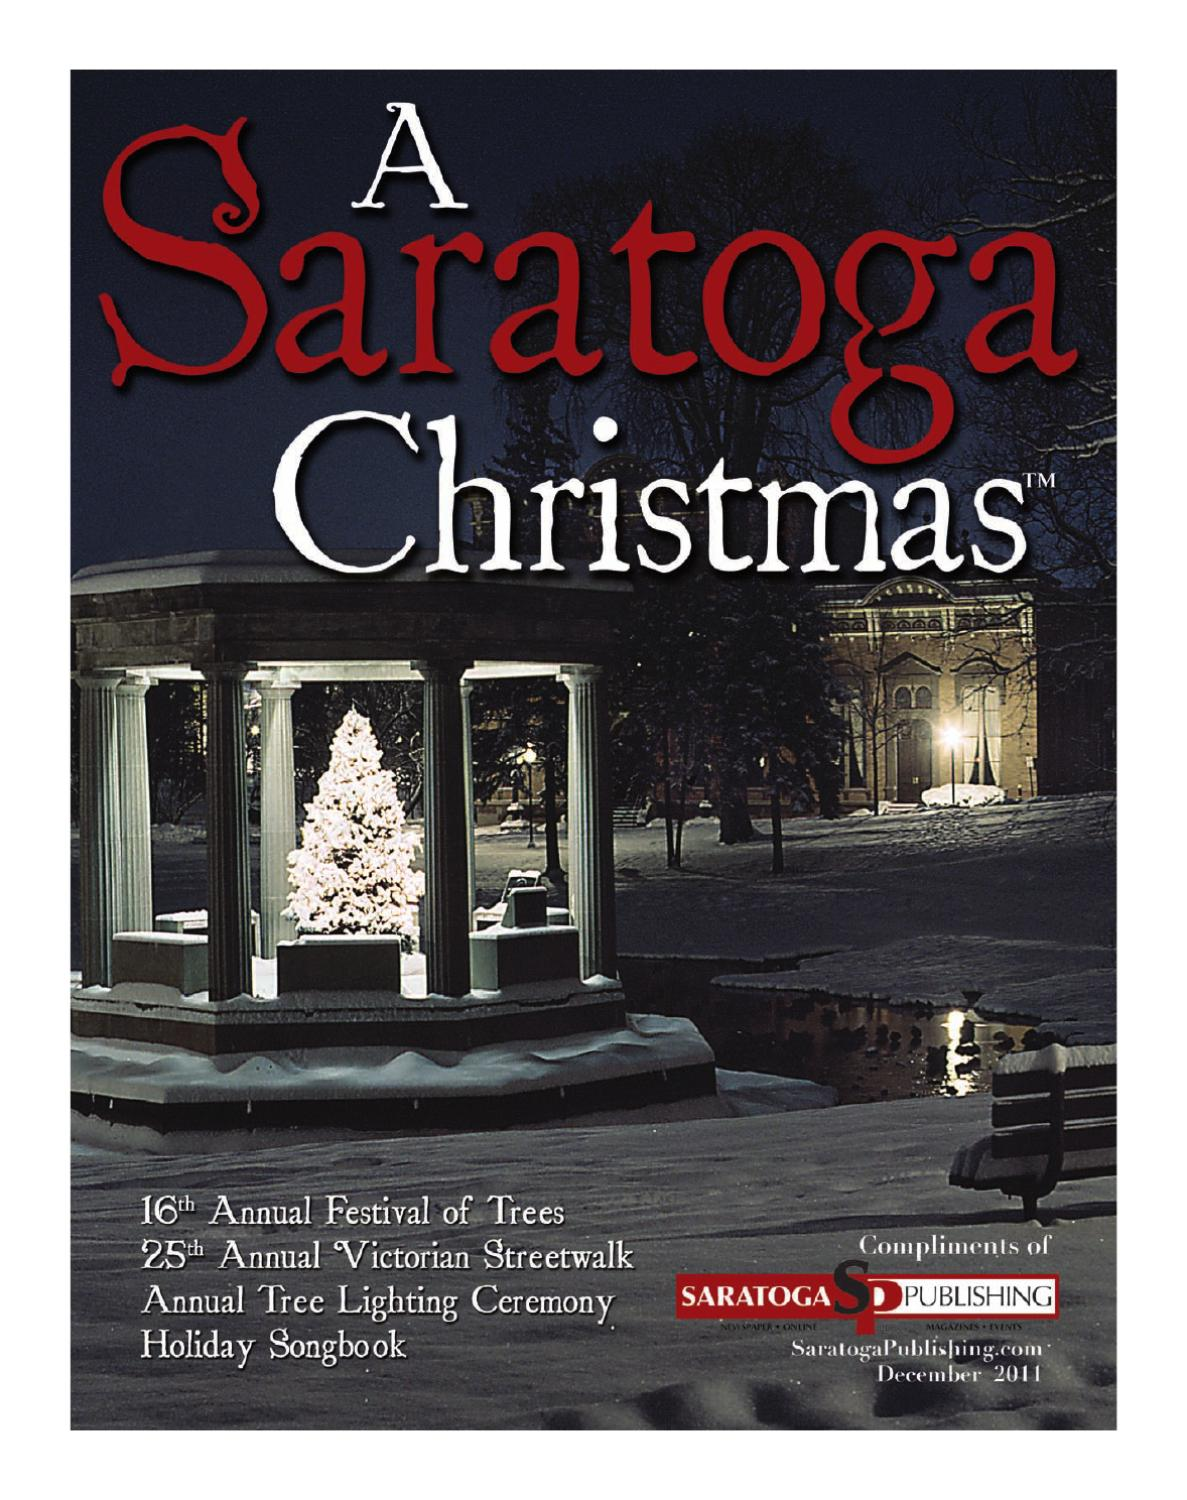 Saratoga christmas by saratoga publishing issuu